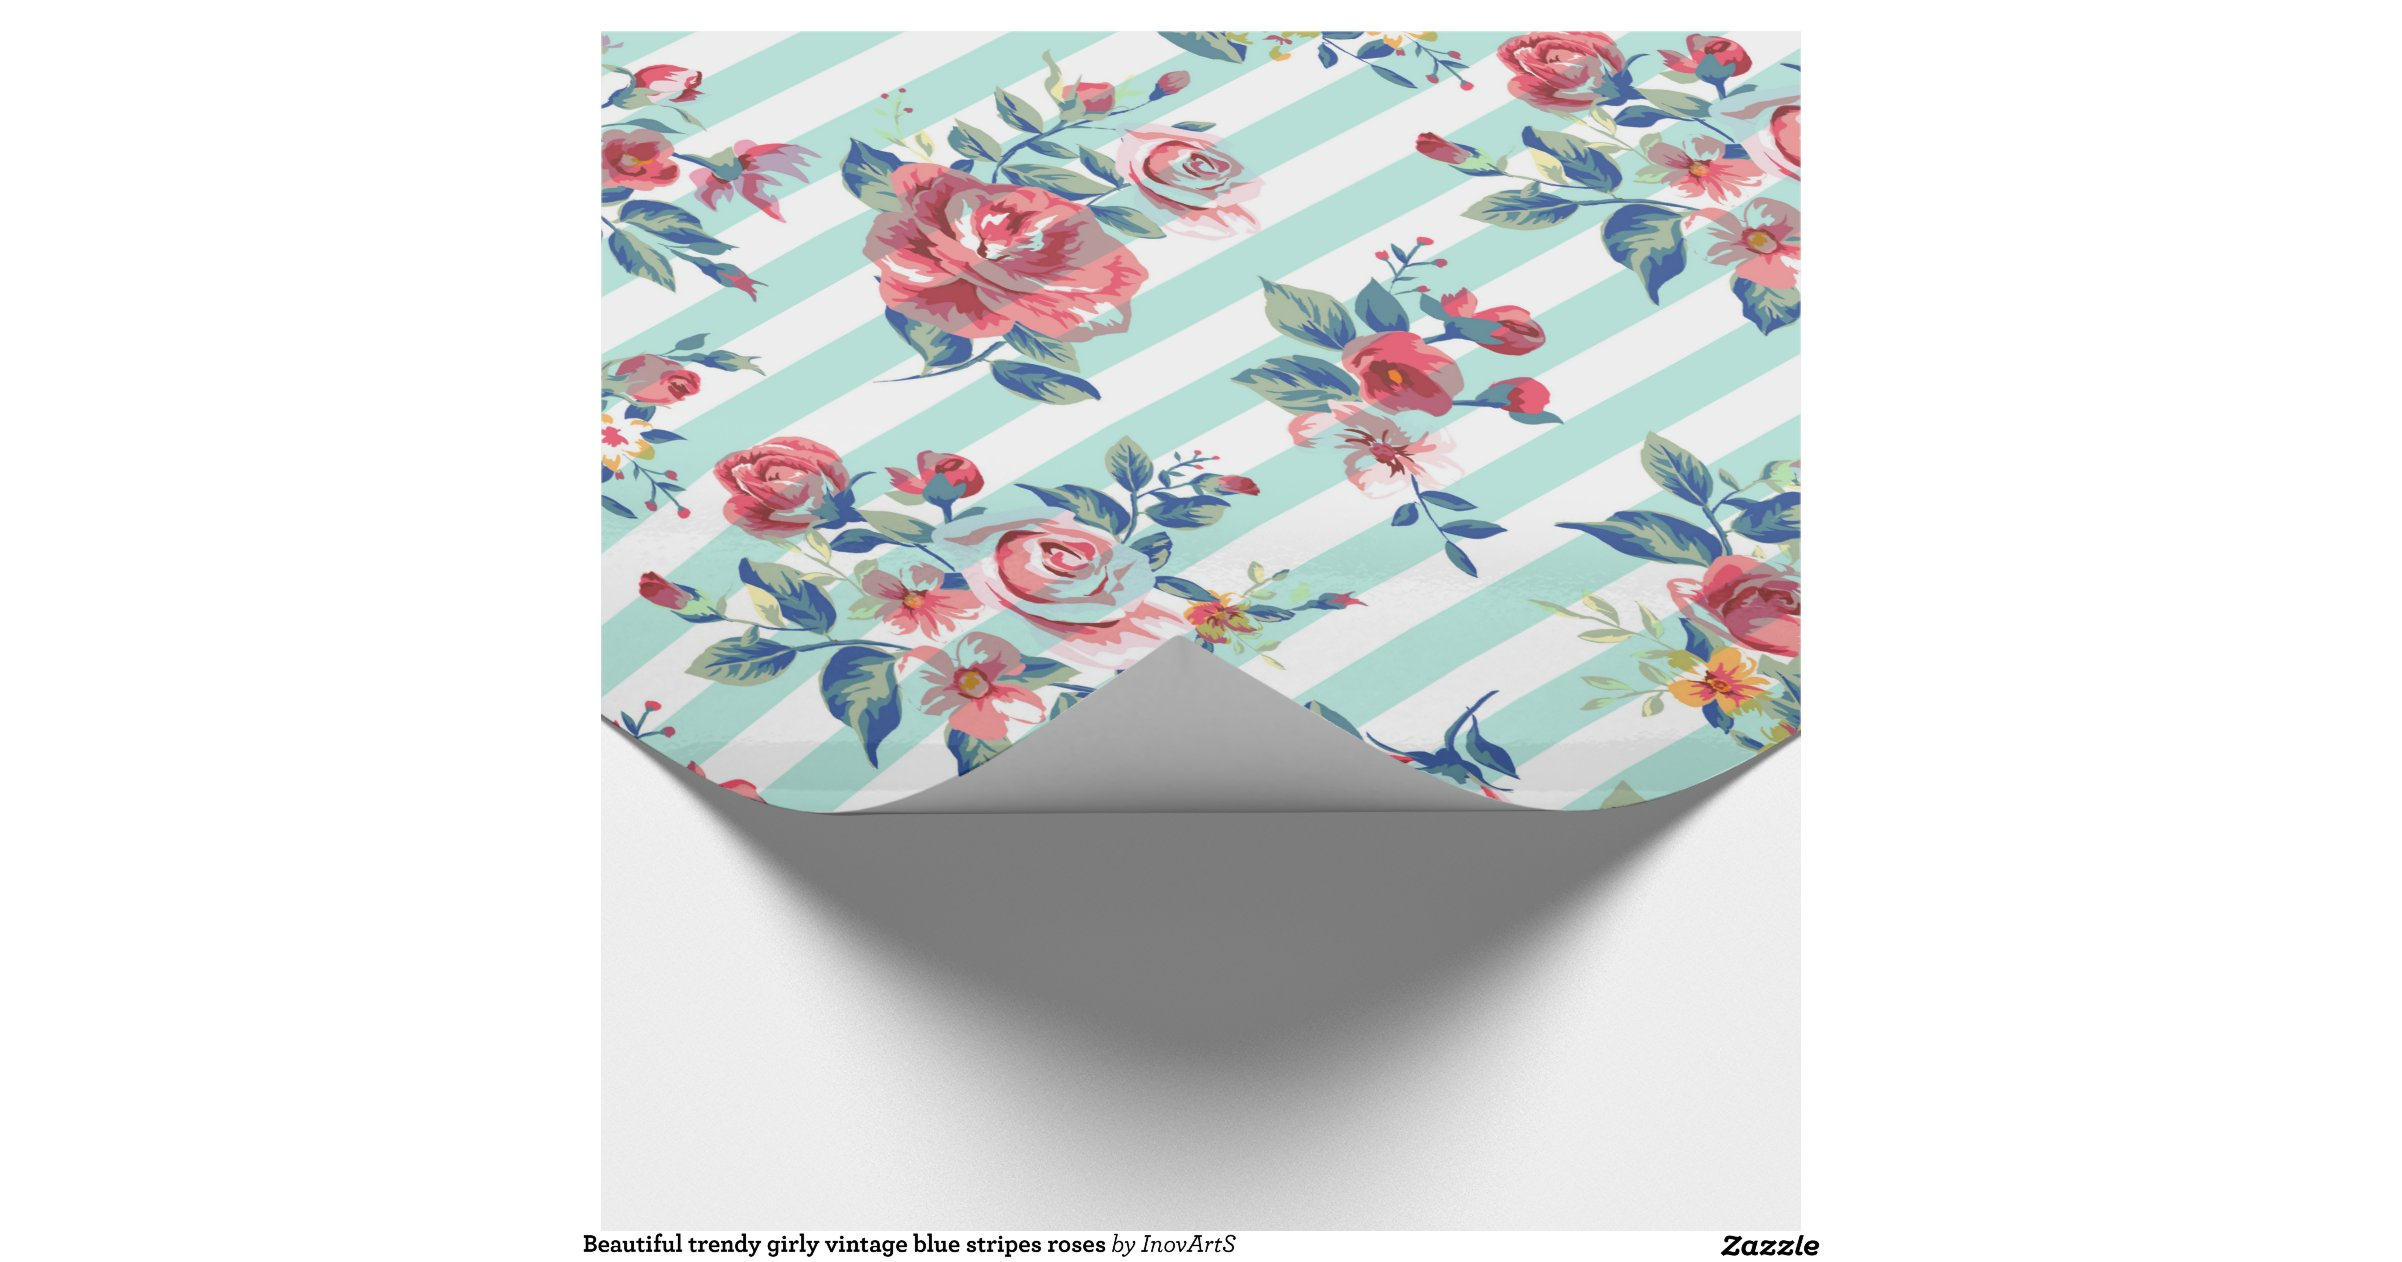 beautiful wrapping paper Gift wrapping is the act of enclosing a gift in some sort of material wrapping  paper is a kind of  new designs in the subsequent decades, adding ribbons in  the 1930s, and hallmark remains one of the largest american producers of gift  wrap.